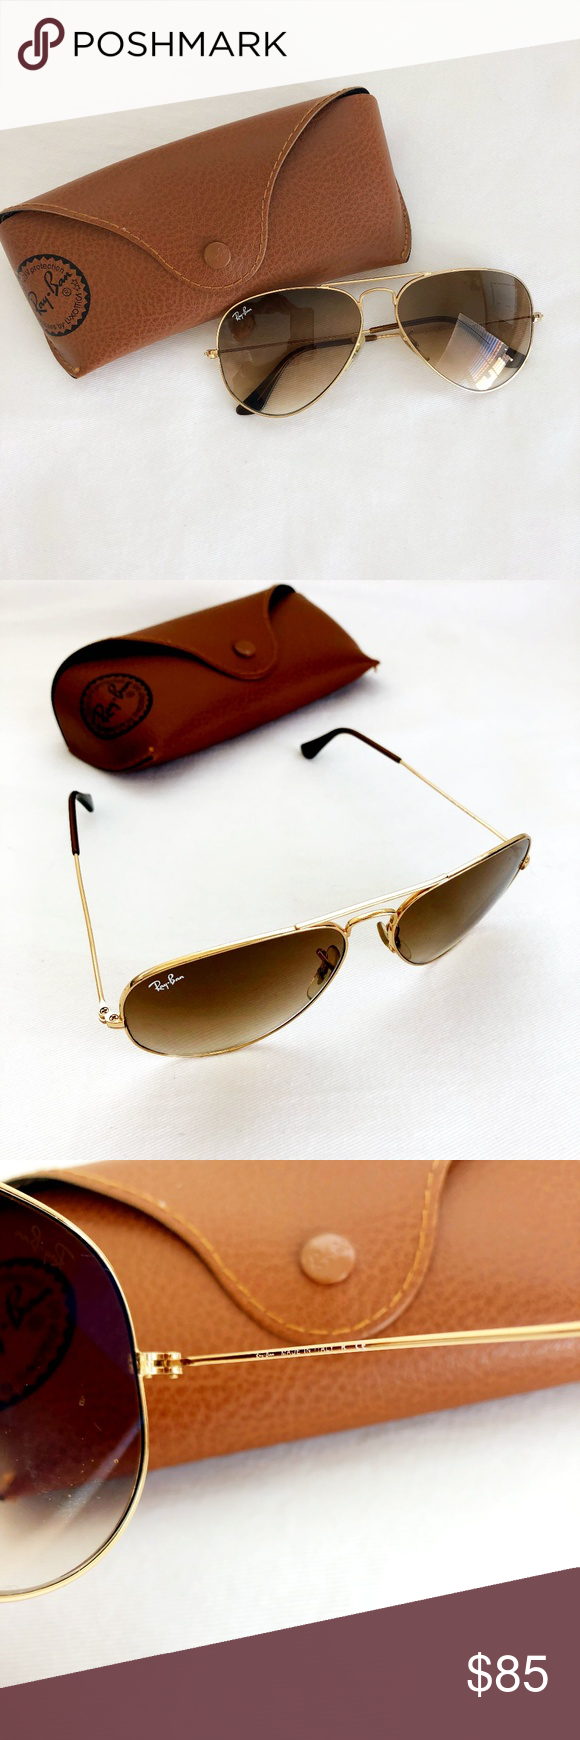 ec30a8bb24 Ray Ban- Gradient Aviator Sunglasses Lens size  58mm Style    3025  Excellent used